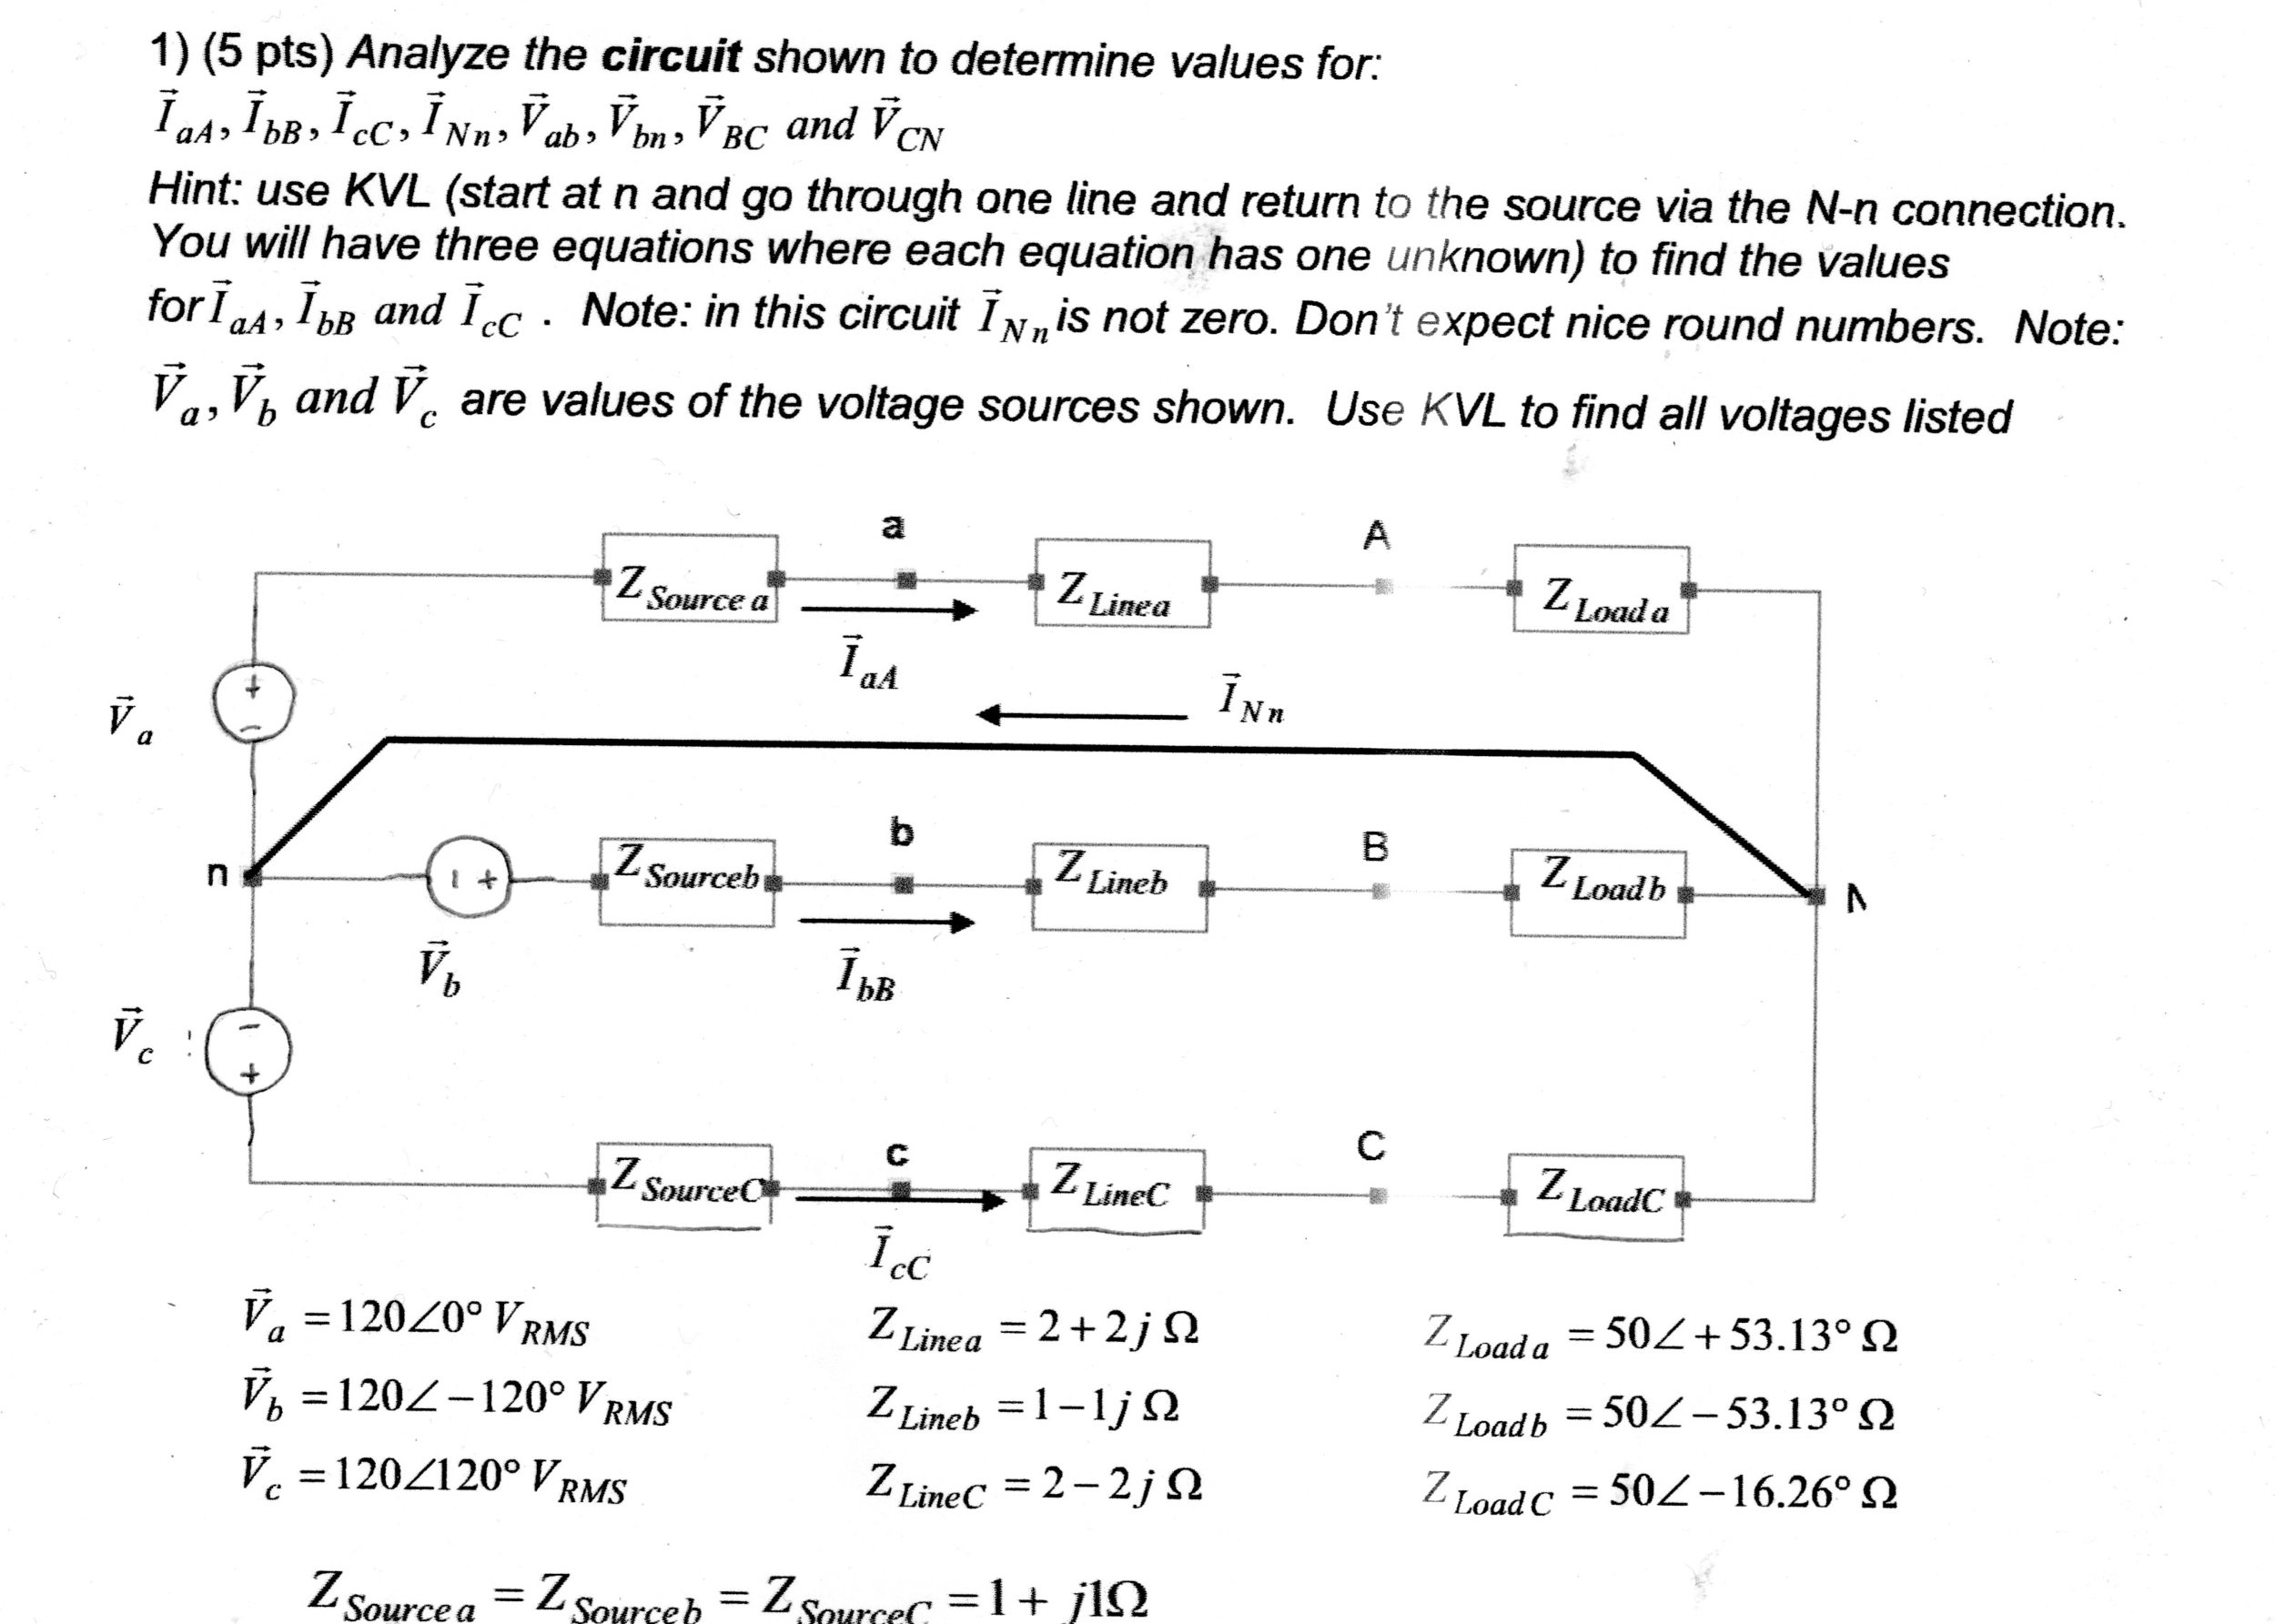 Analyze the circuit shown to determine values for: